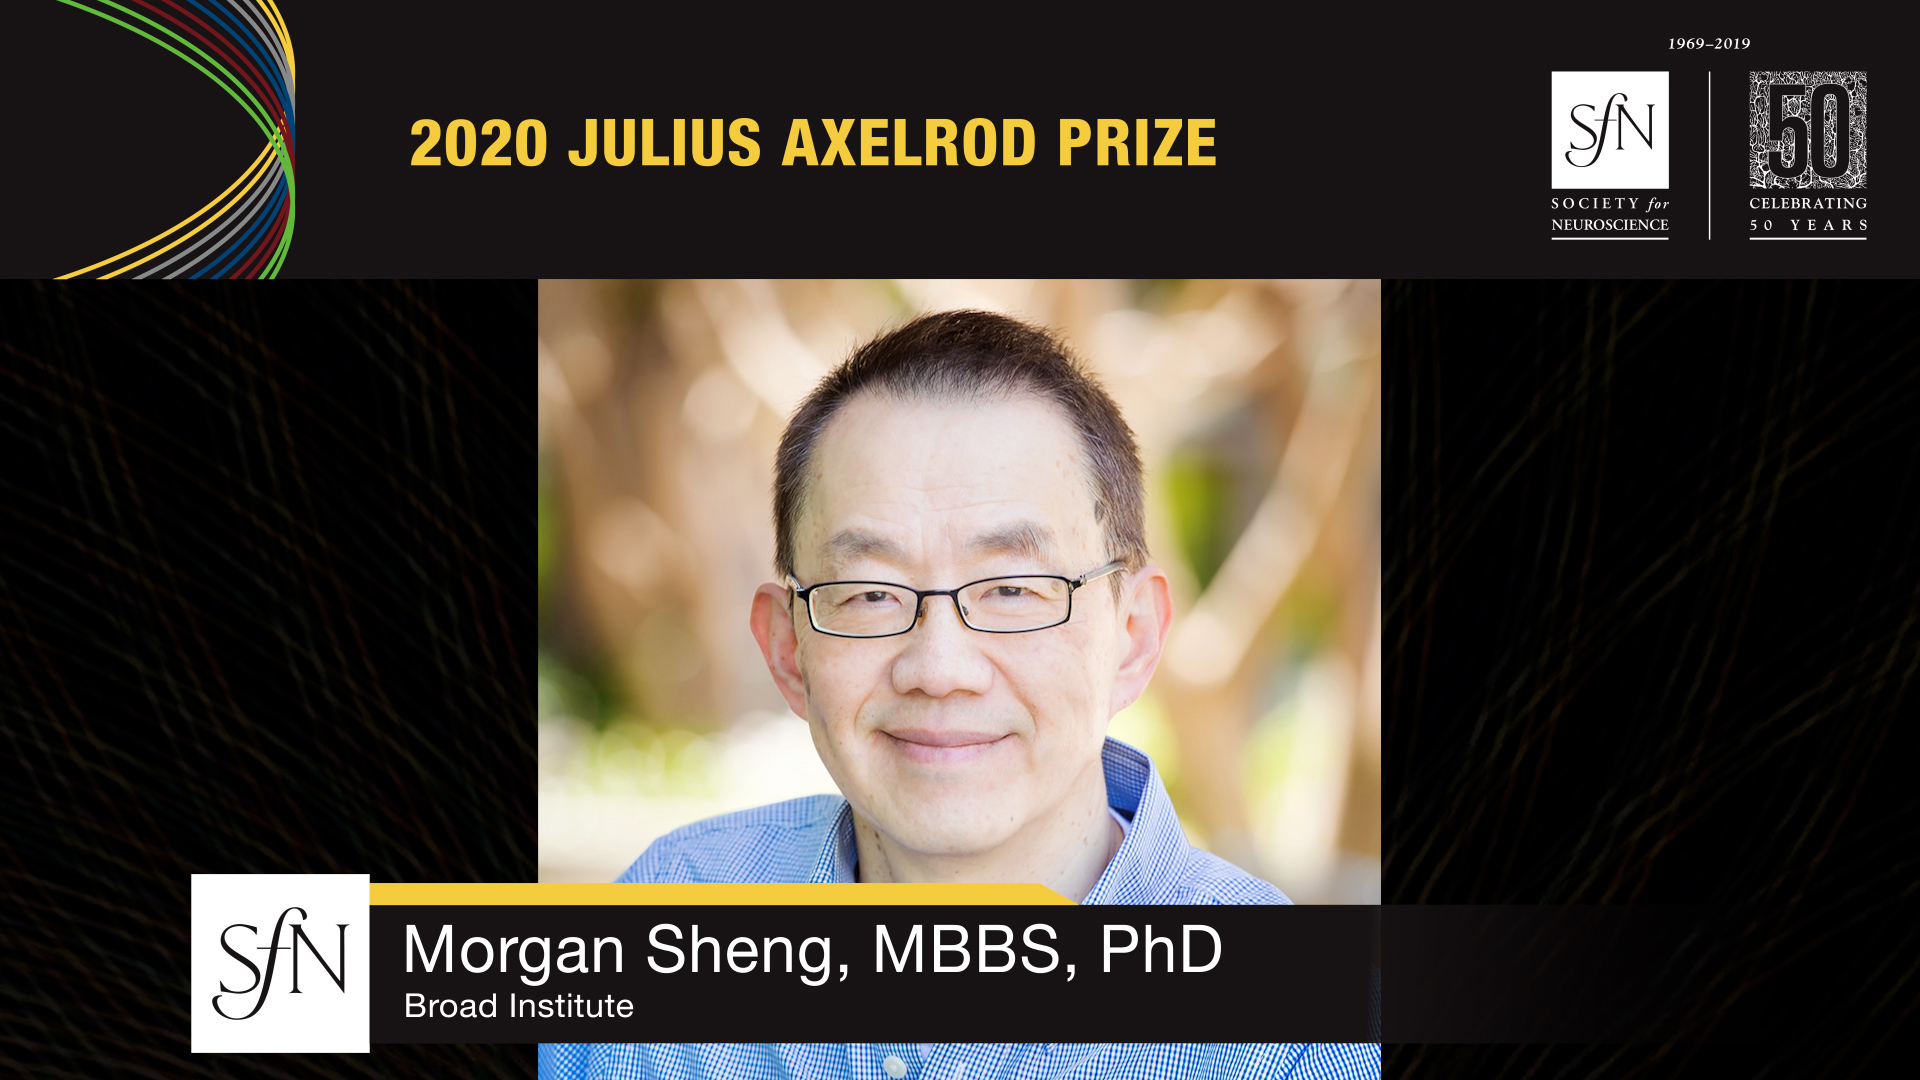 2020 Julius Axelrod Prize award winner graphic, image of Morgan Sheng, MBBS, PhD Broad Institute